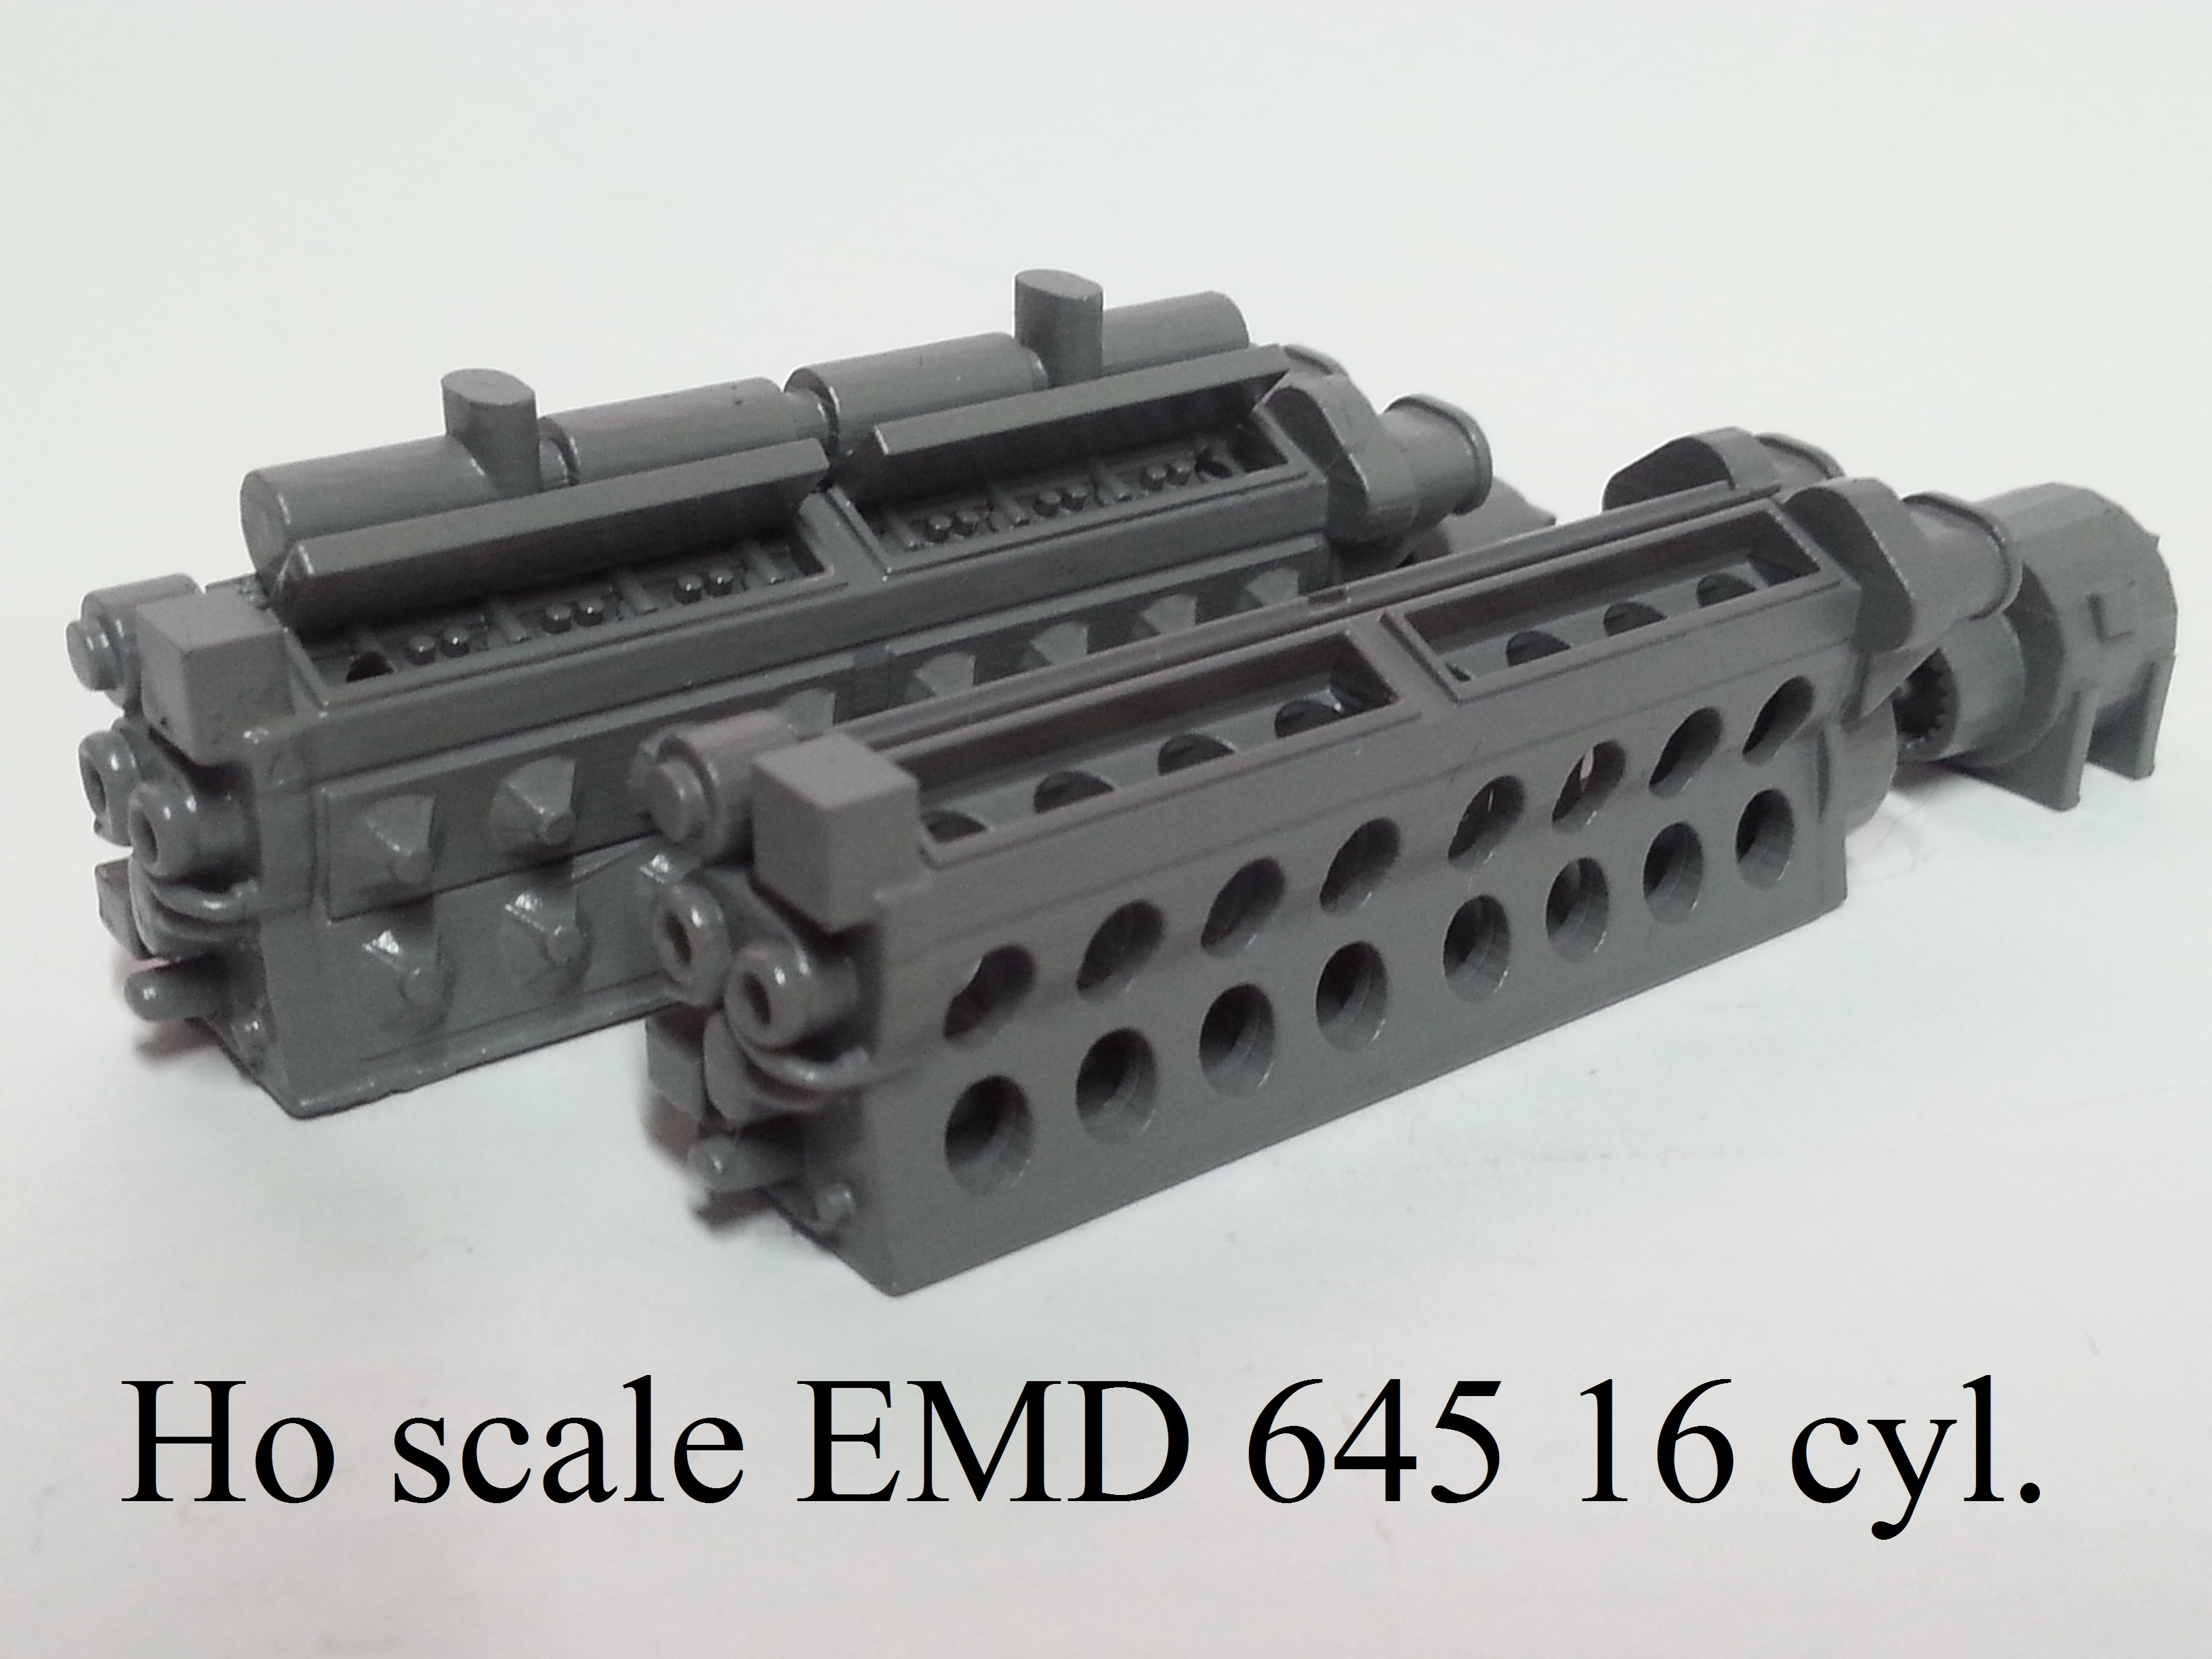 Ho scale EMD 645 16 Cyl. Prime Mover